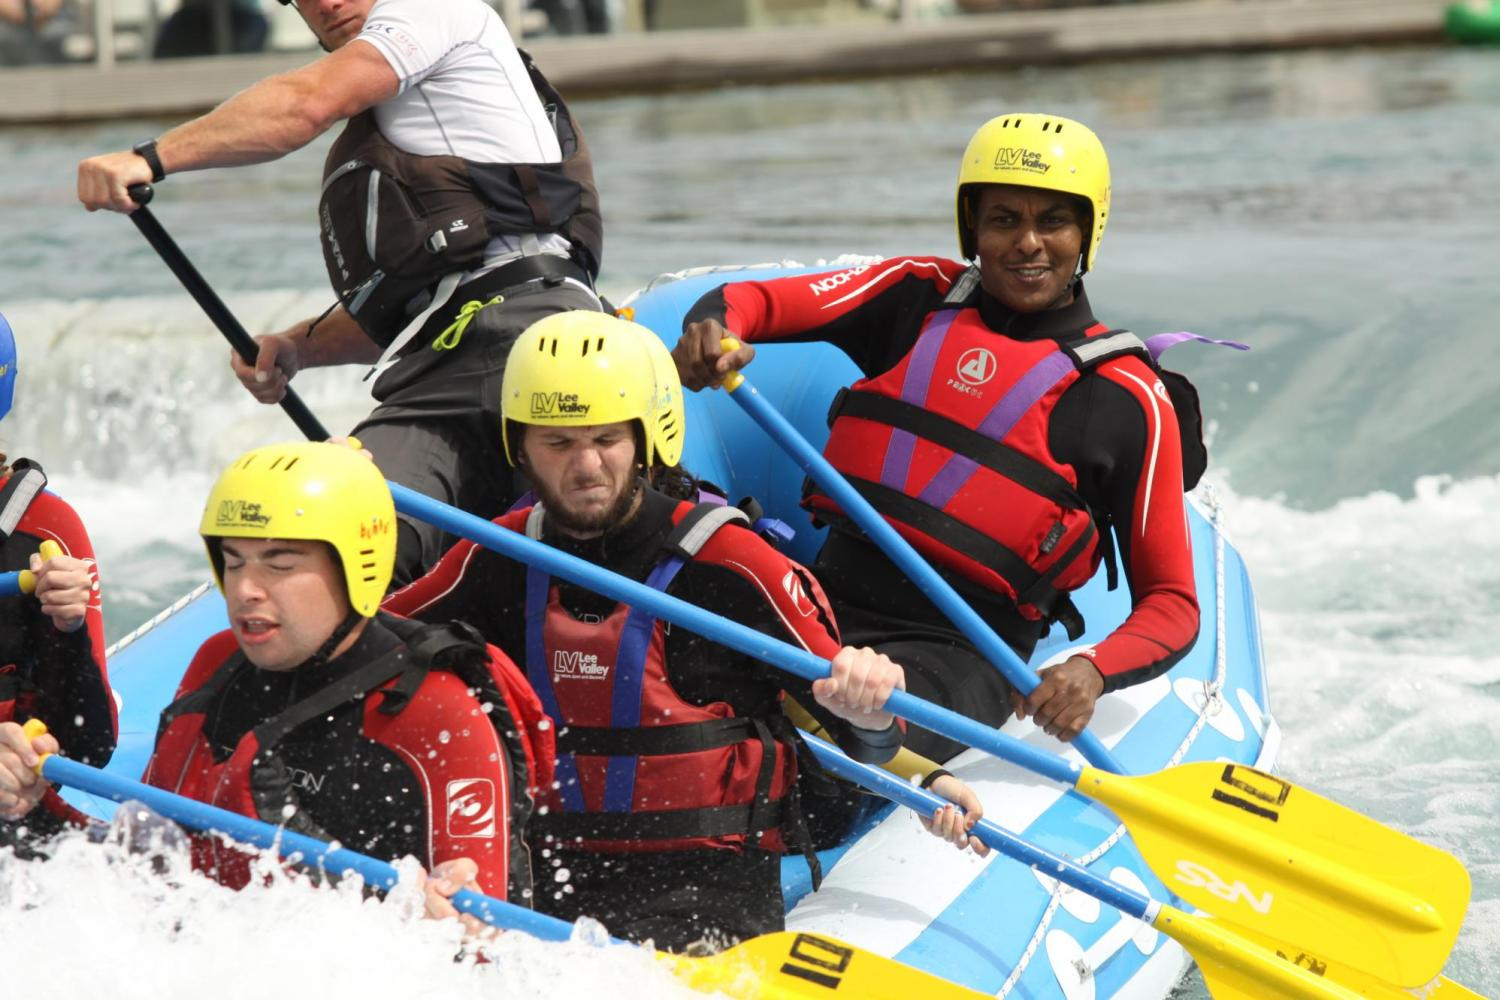 DSC Community Club Outing - Lee Valley White Water Rafting